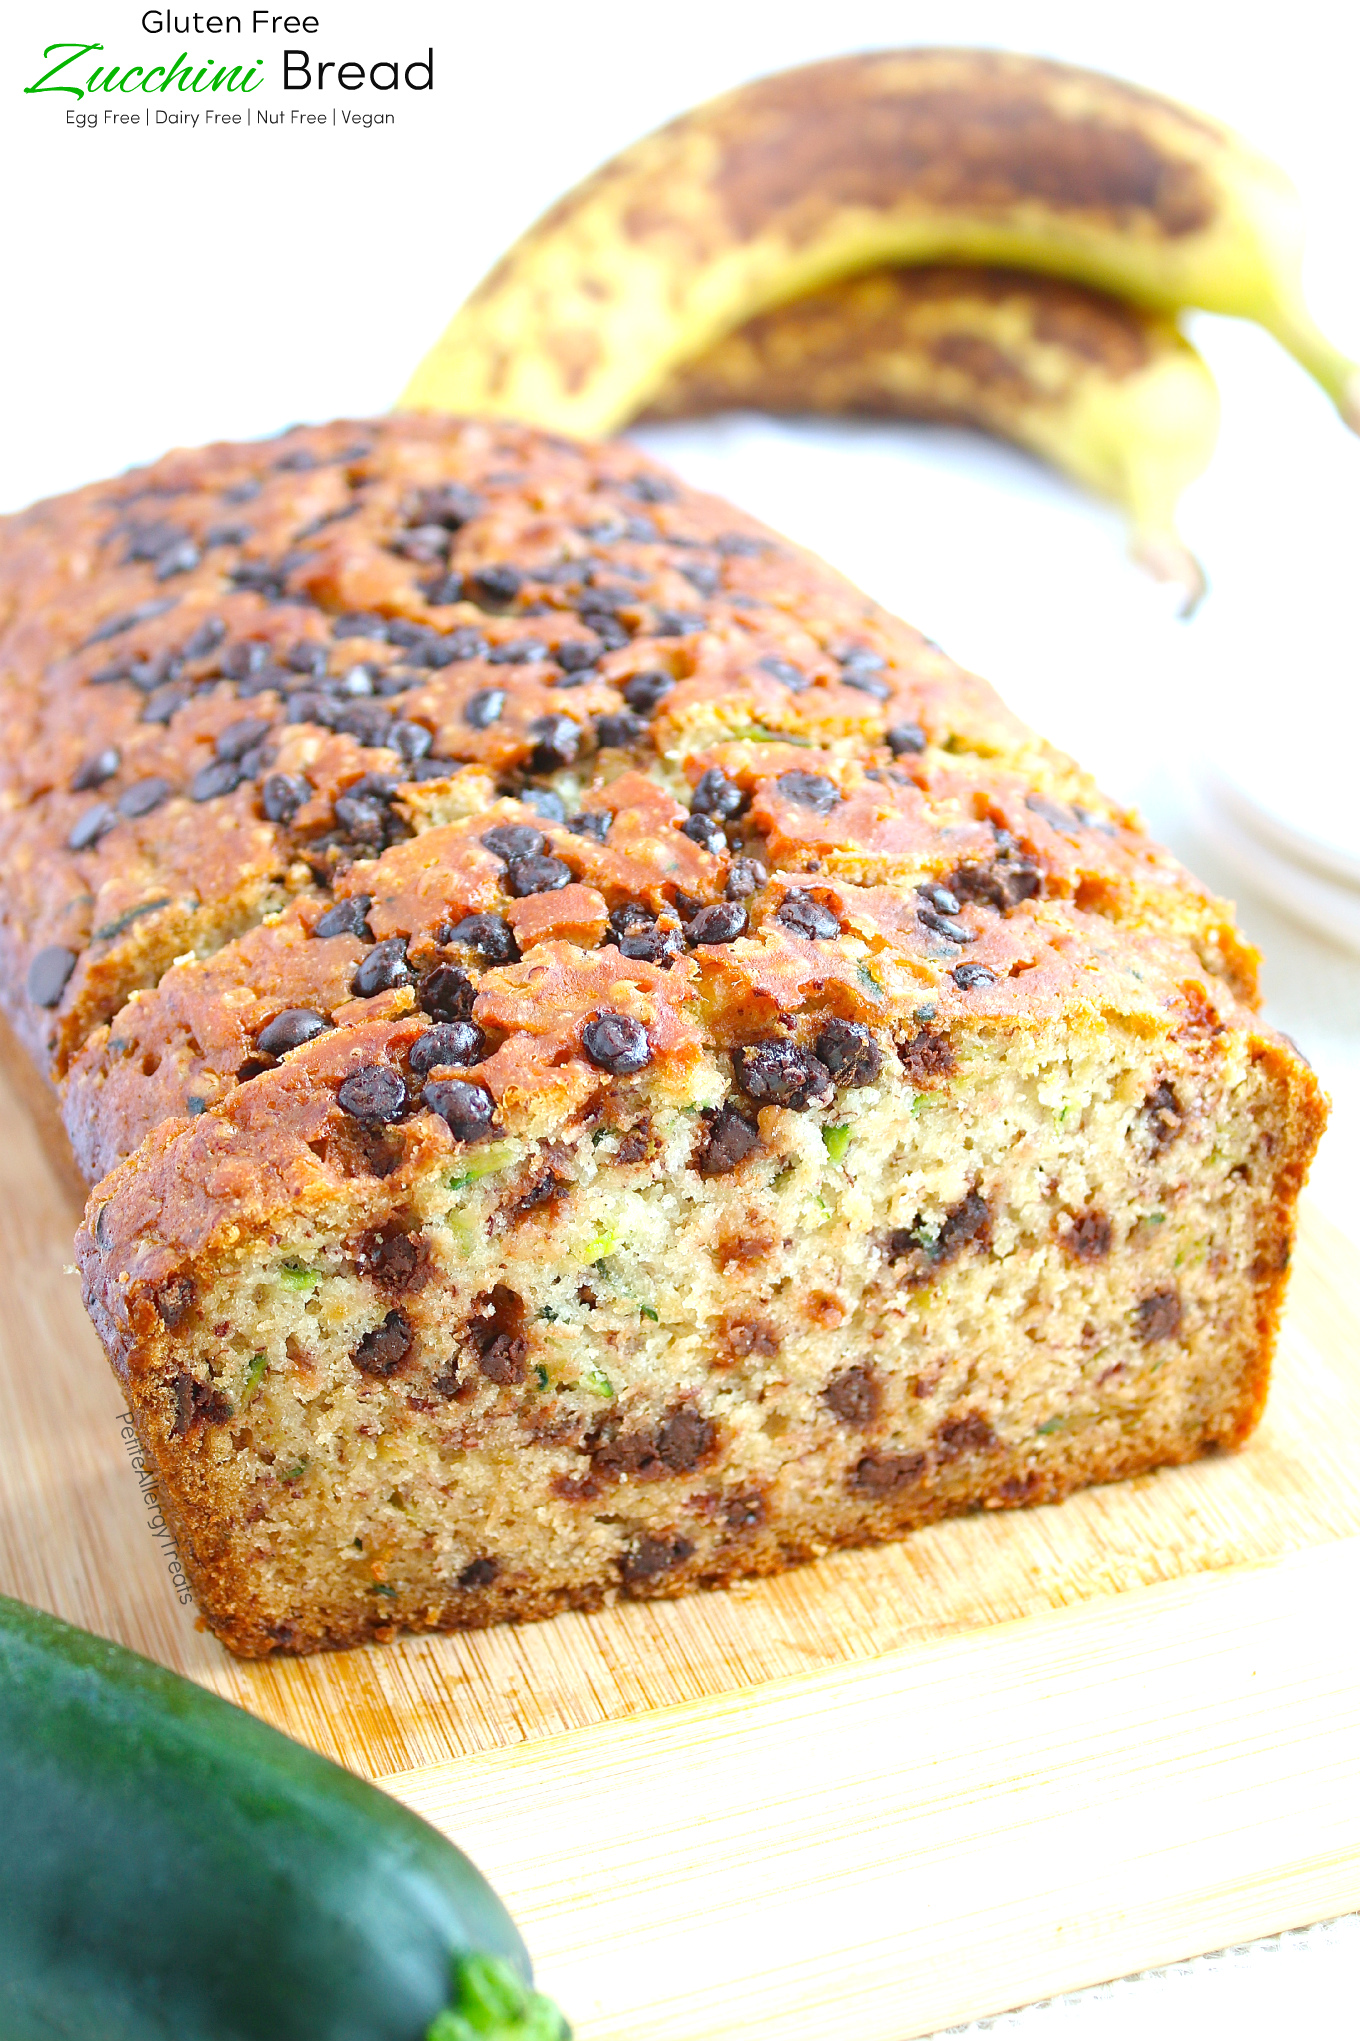 Easy egg free Gluten Free Zucchini Bread Recipe (dairy free Vegan)- One bowl gluten free chocolate chip zucchini bread. #glutenfree, #dairyfree, #eggfree, #vegan